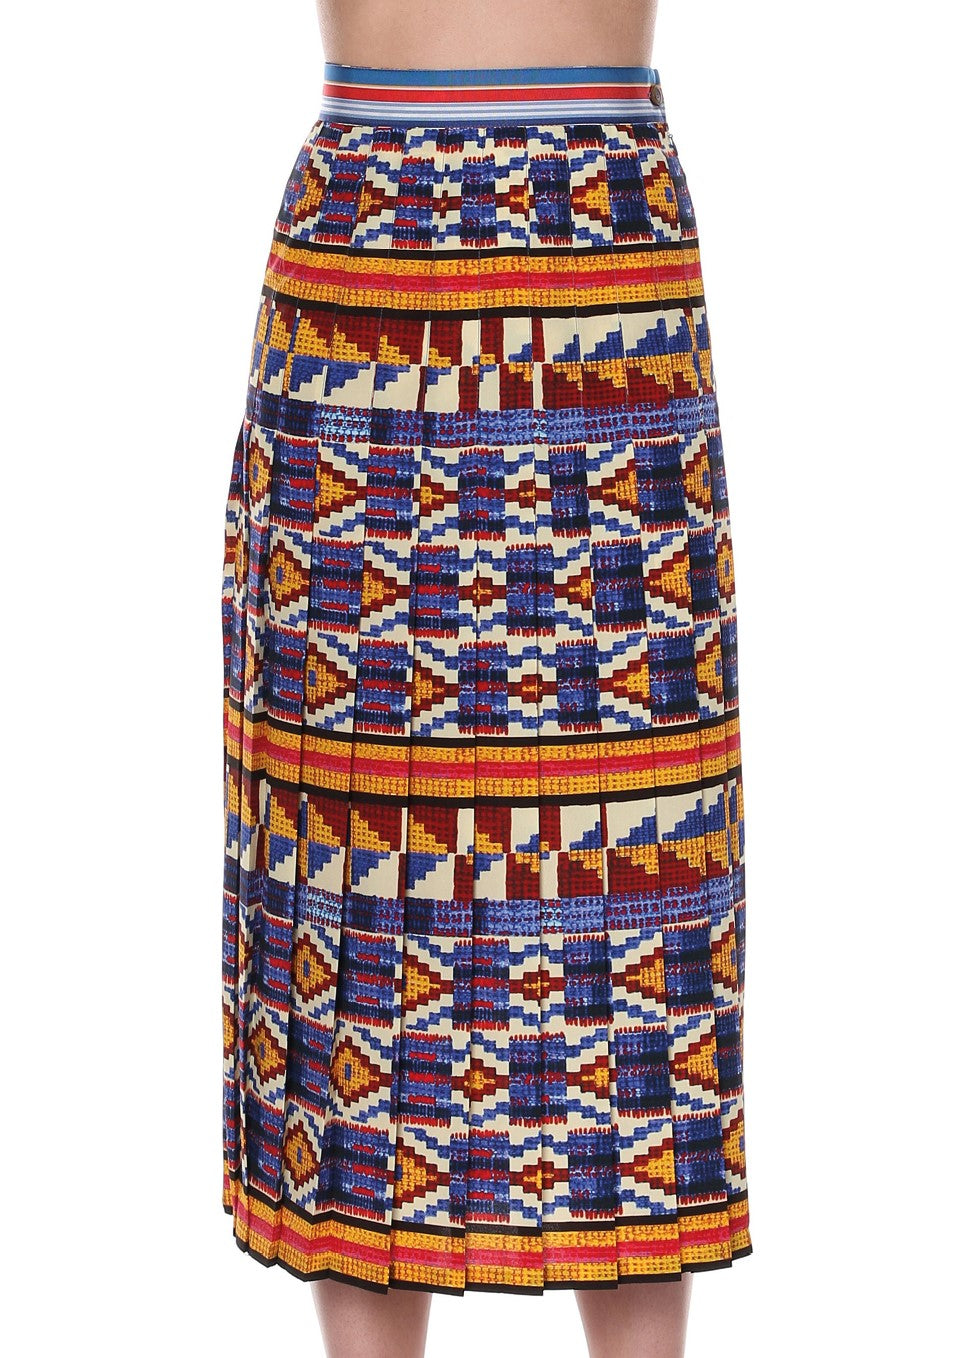 Stella Jean pleated skirt in kente multi